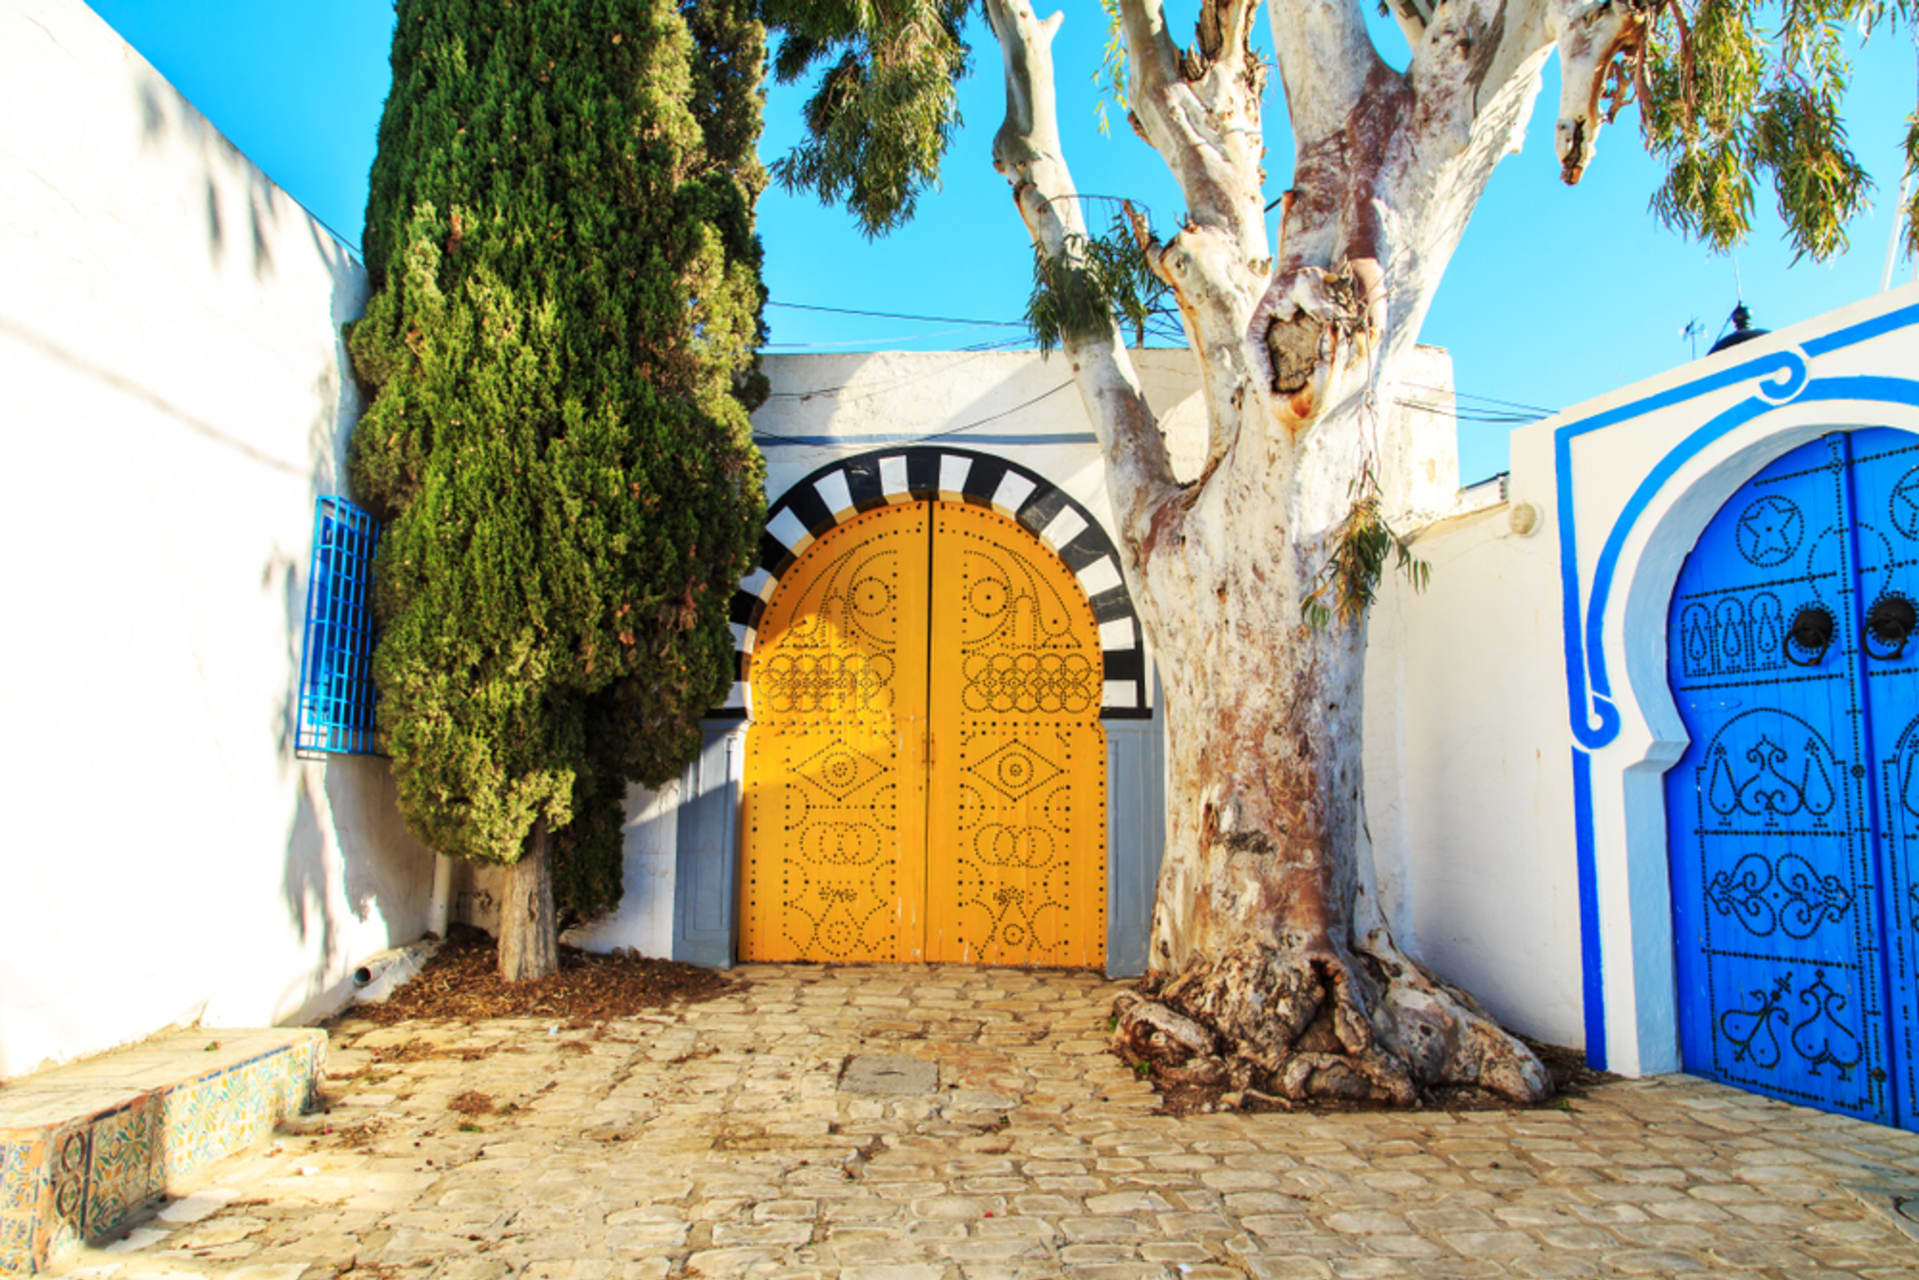 Tunis & Carthage - Shades of White and Blue in Sidi-Bou-Saïd